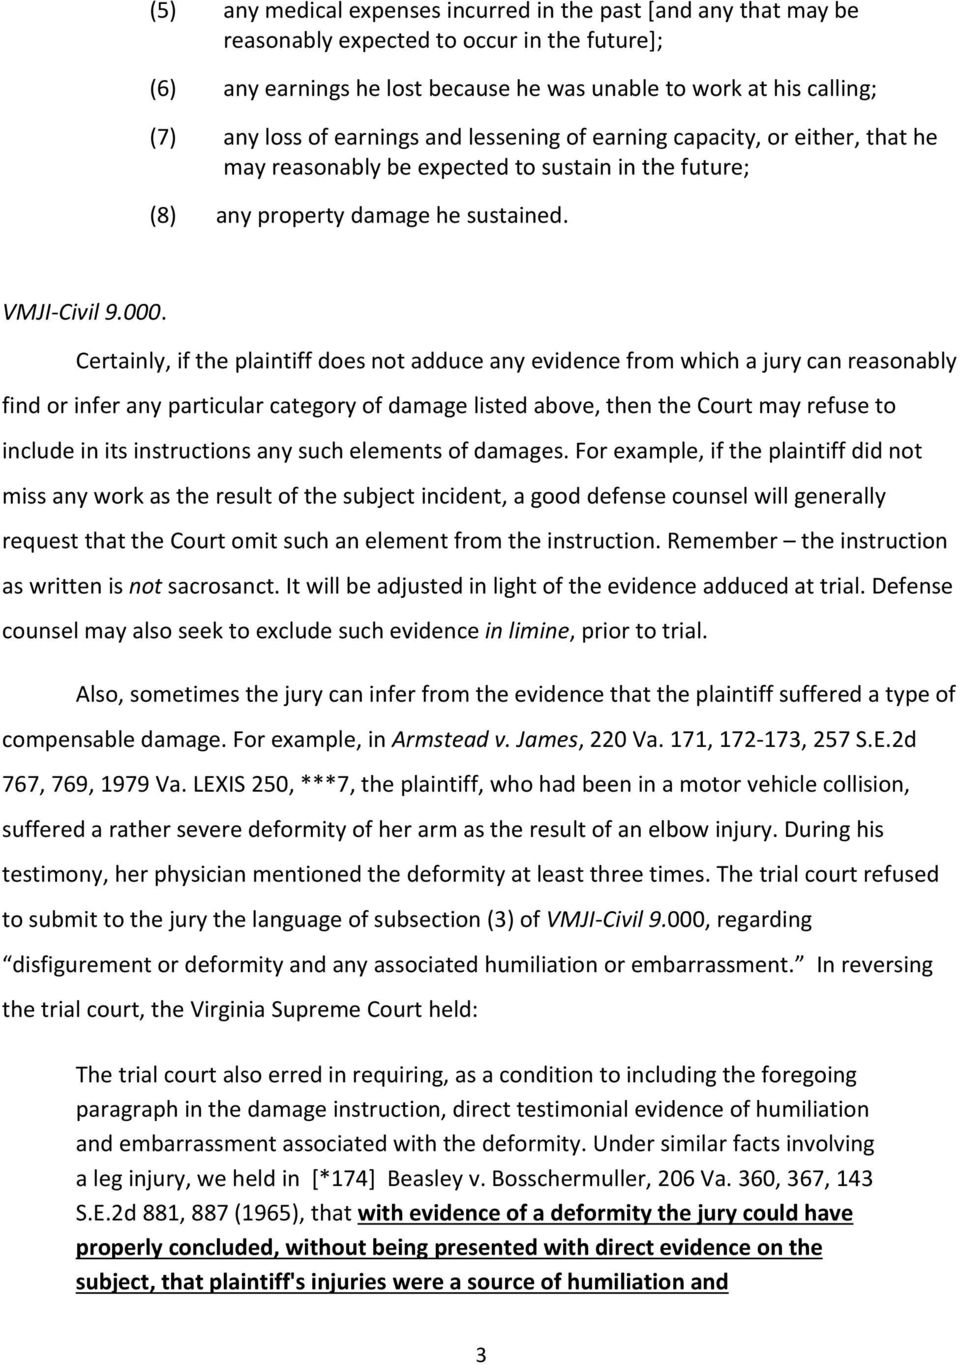 Certainly, if the plaintiff does not adduce any evidence from which a jury can reasonably find or infer any particular category of damage listed above, then the Court may refuse to include in its